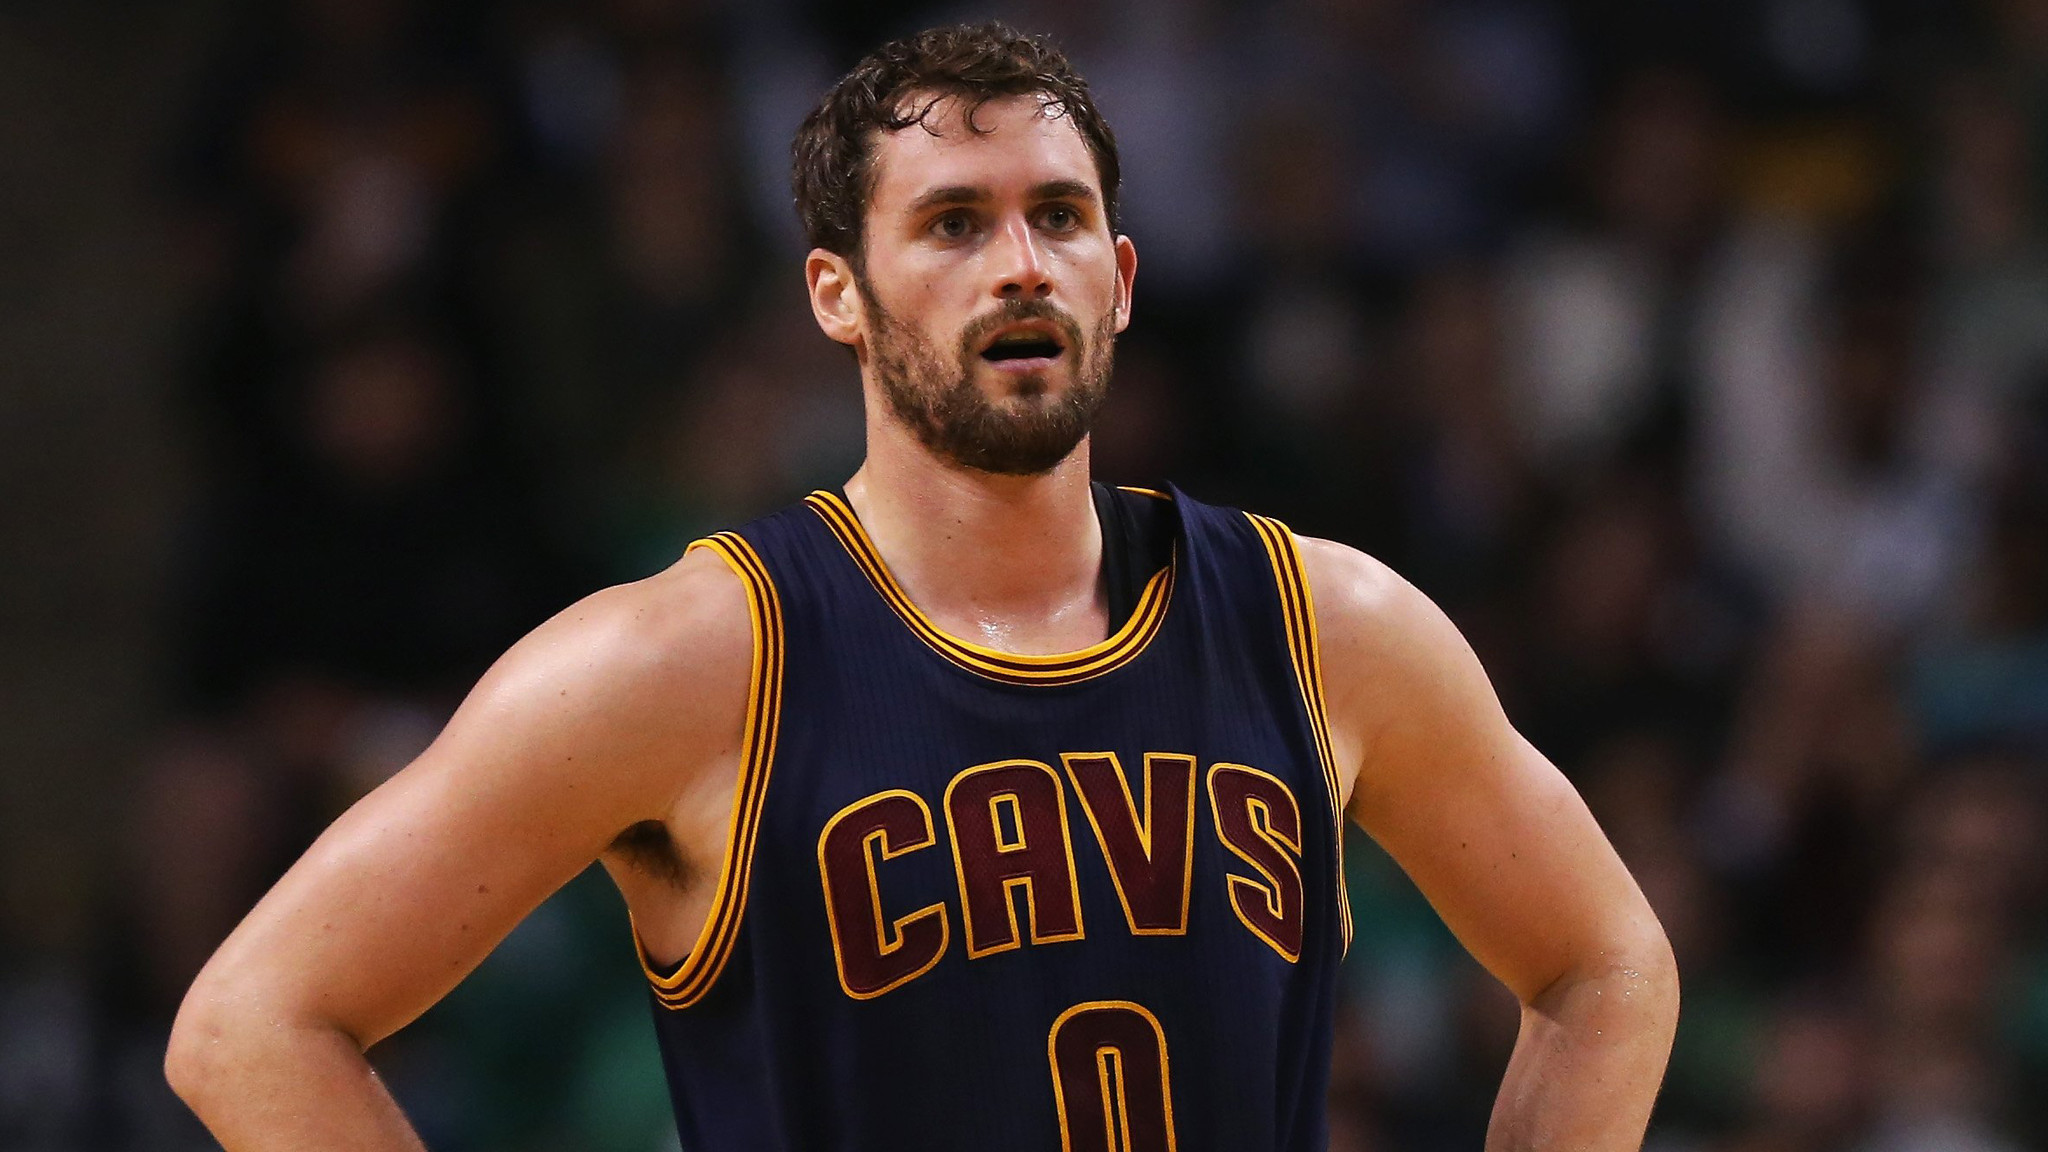 Kevin Love says he plans to return to Cleveland Cavaliers ...